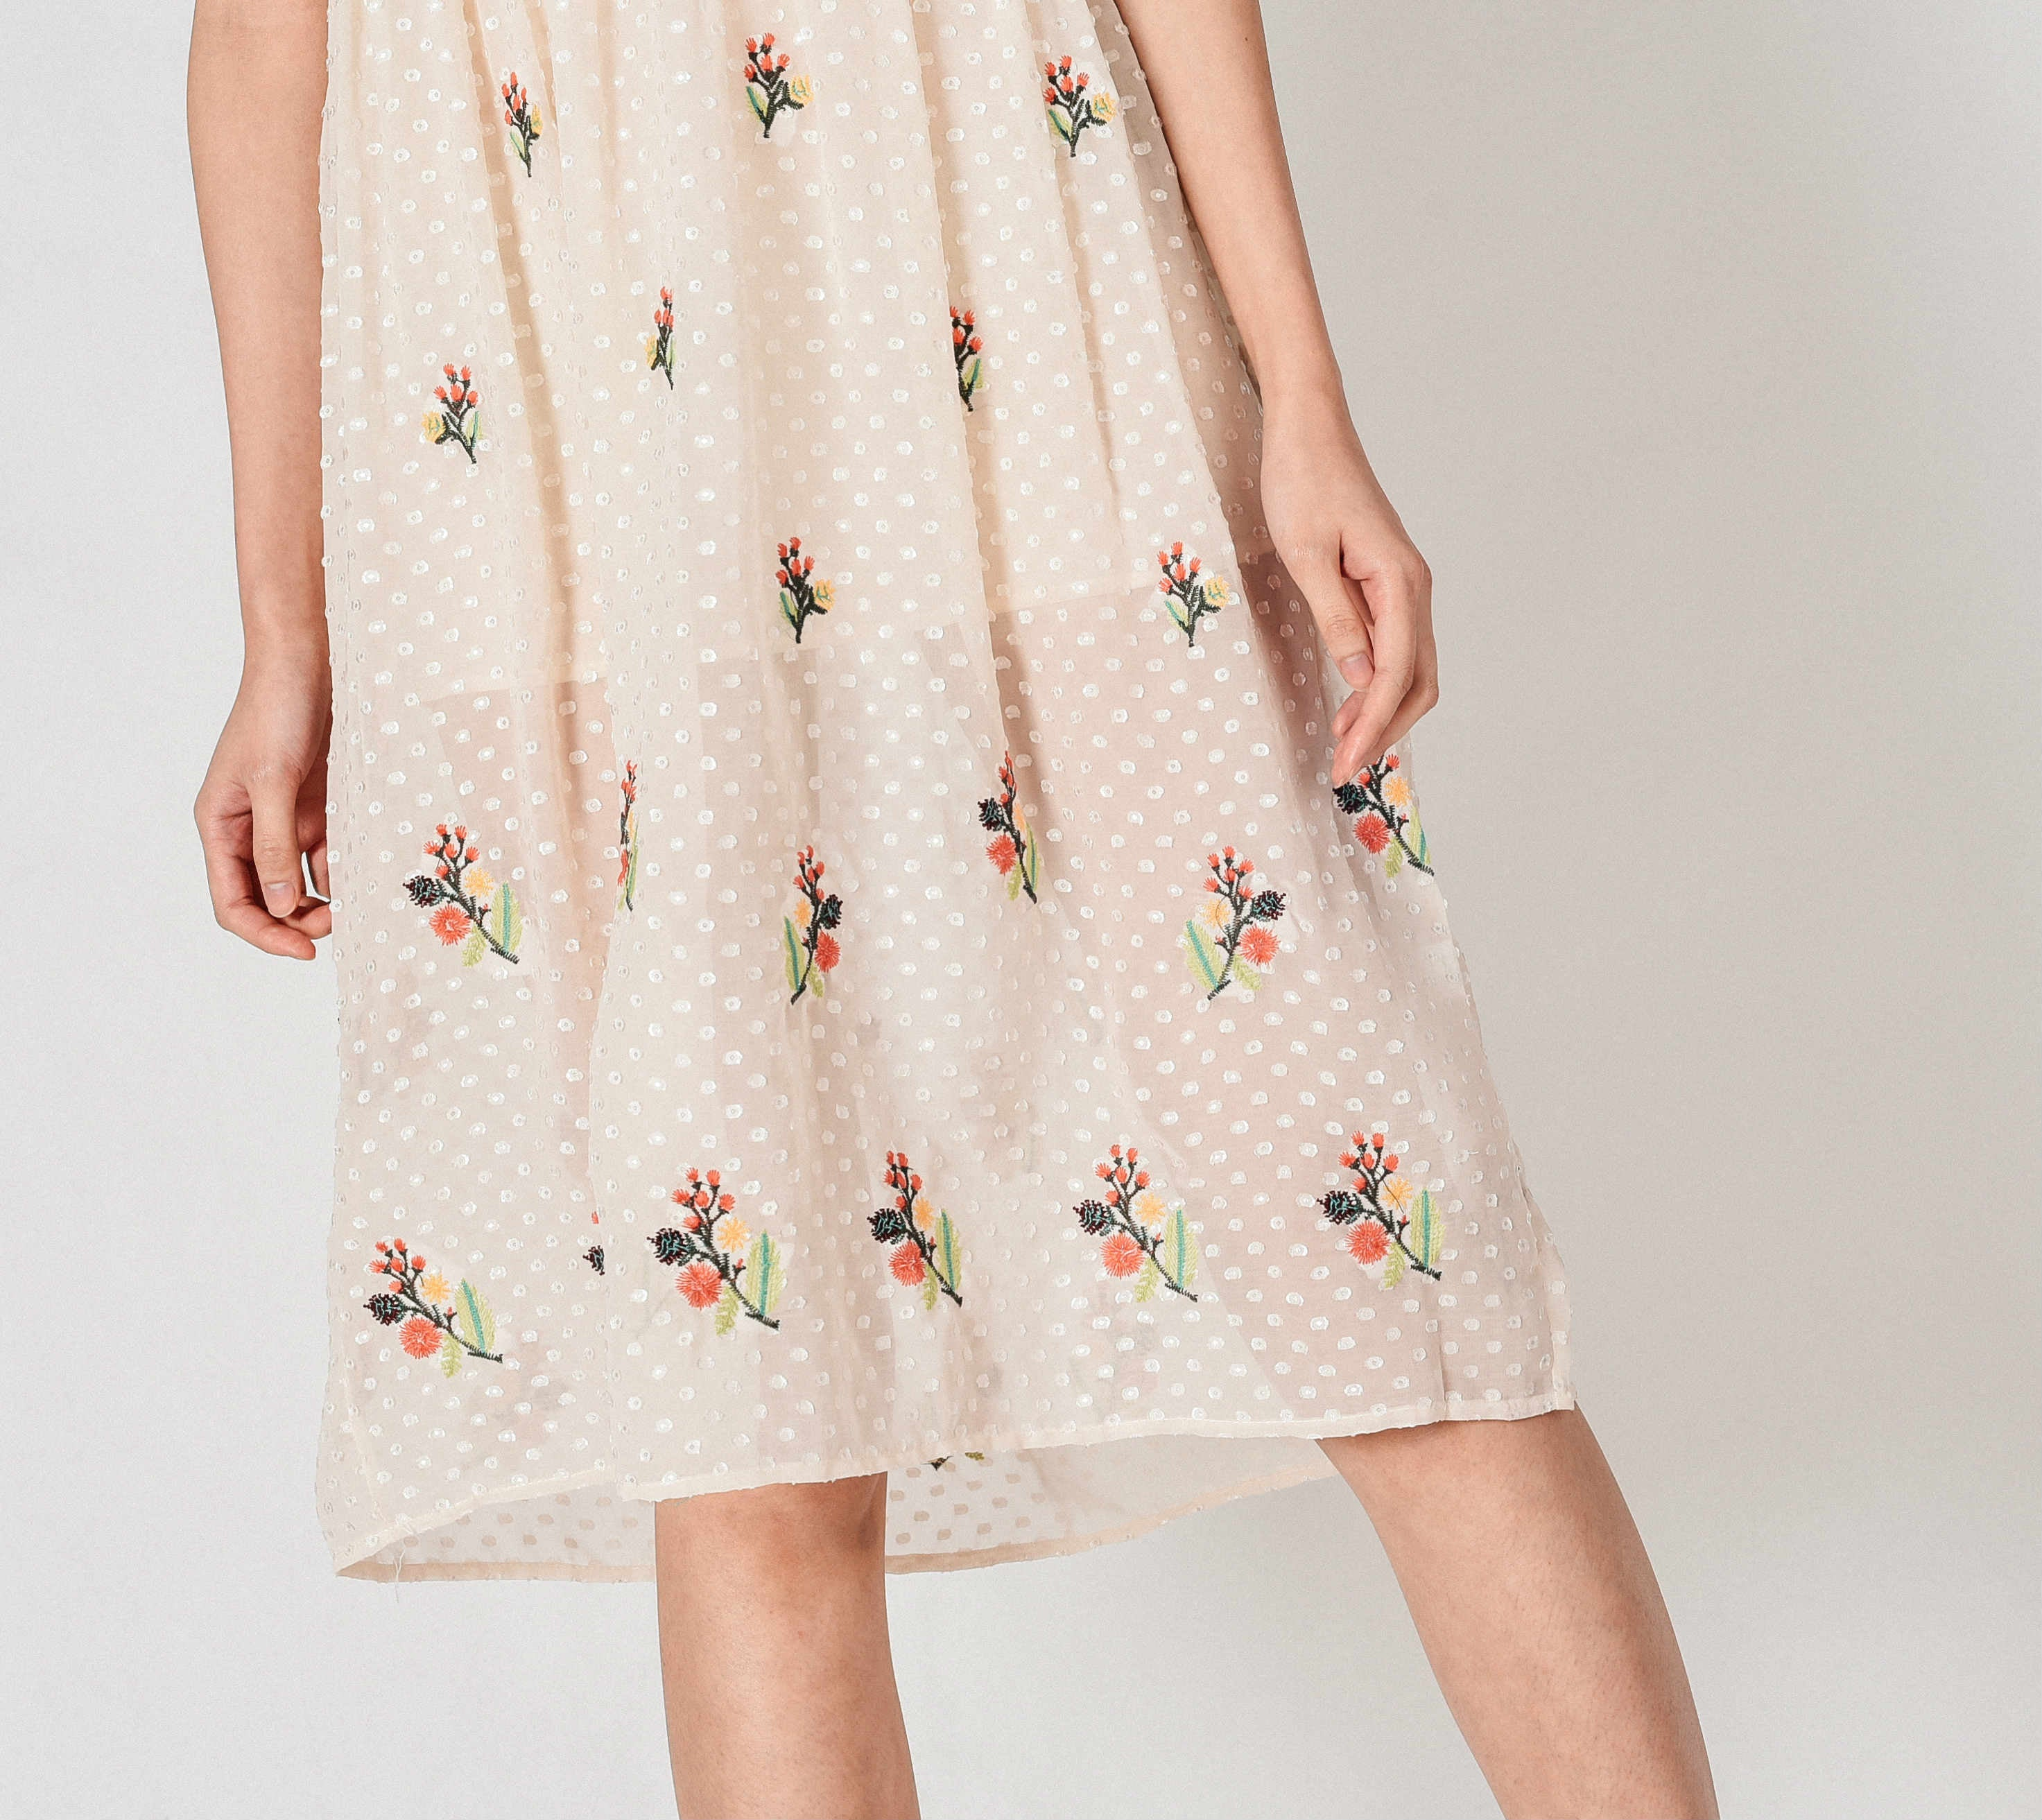 Dainy Embroidered Off-White Dress